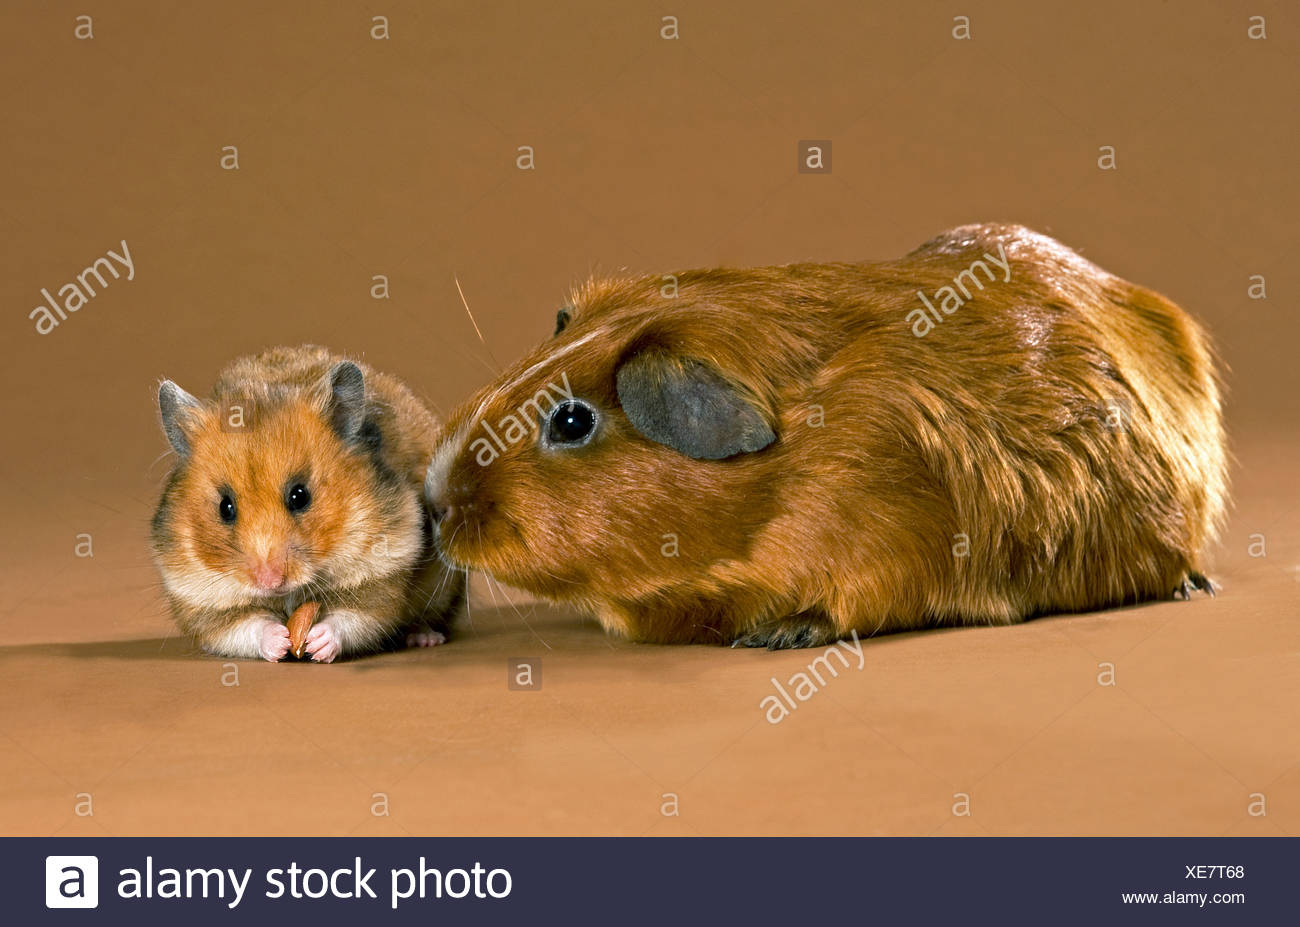 Golden guinea pig stock photos golden guinea pig stock images animal friendship short haired guinea pig and golden hamster stock image jeuxipadfo Gallery